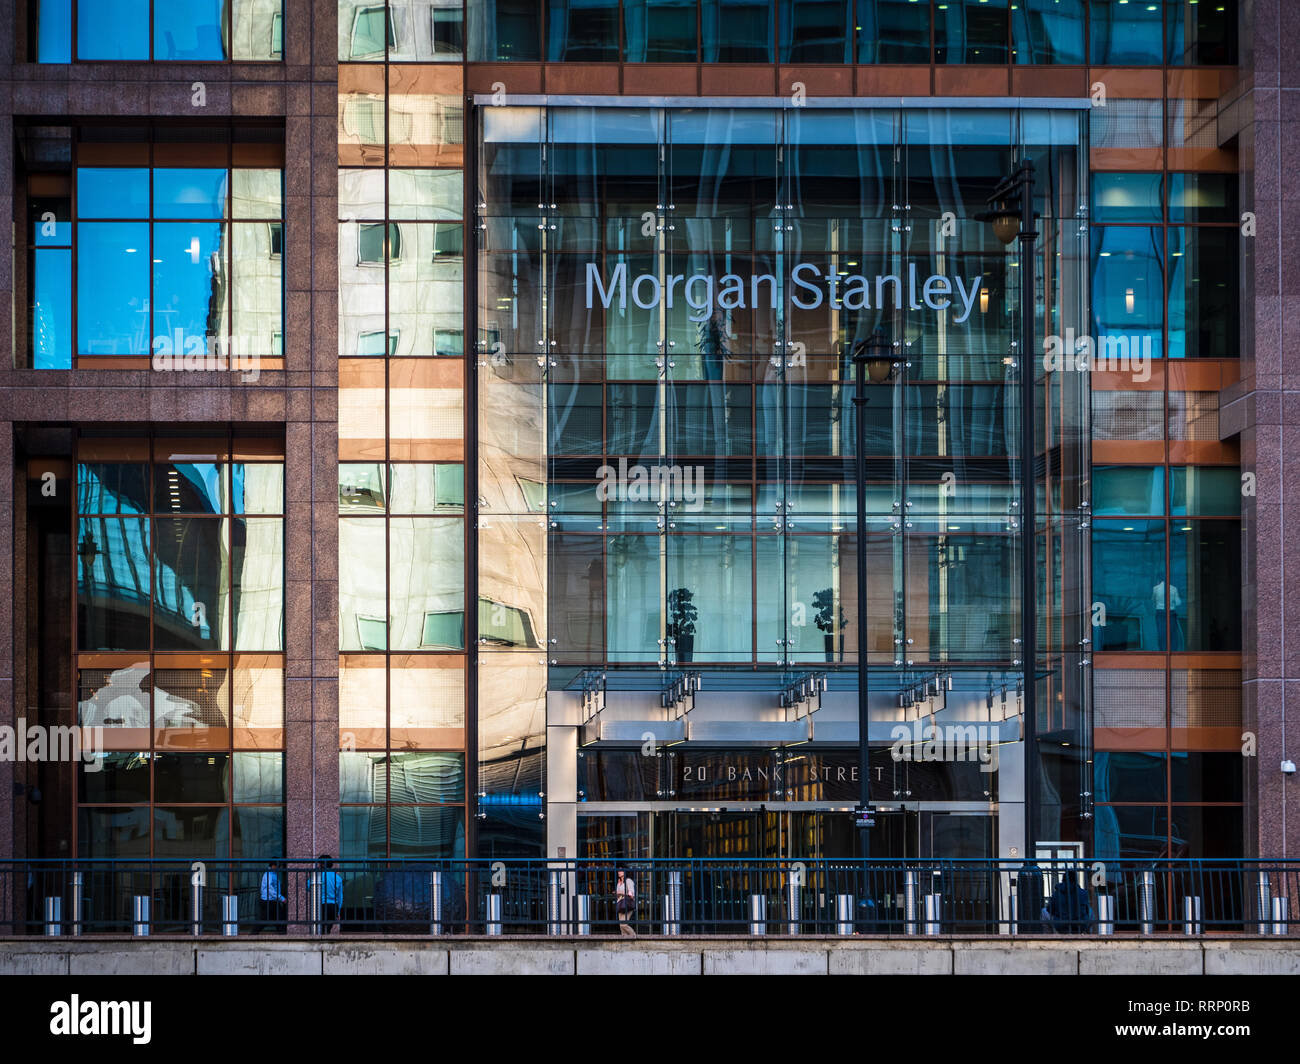 Morgan Stanley London Offices in Canary Wharf. Architects Skidmore Owings Merrill completed 2003 - Stock Image